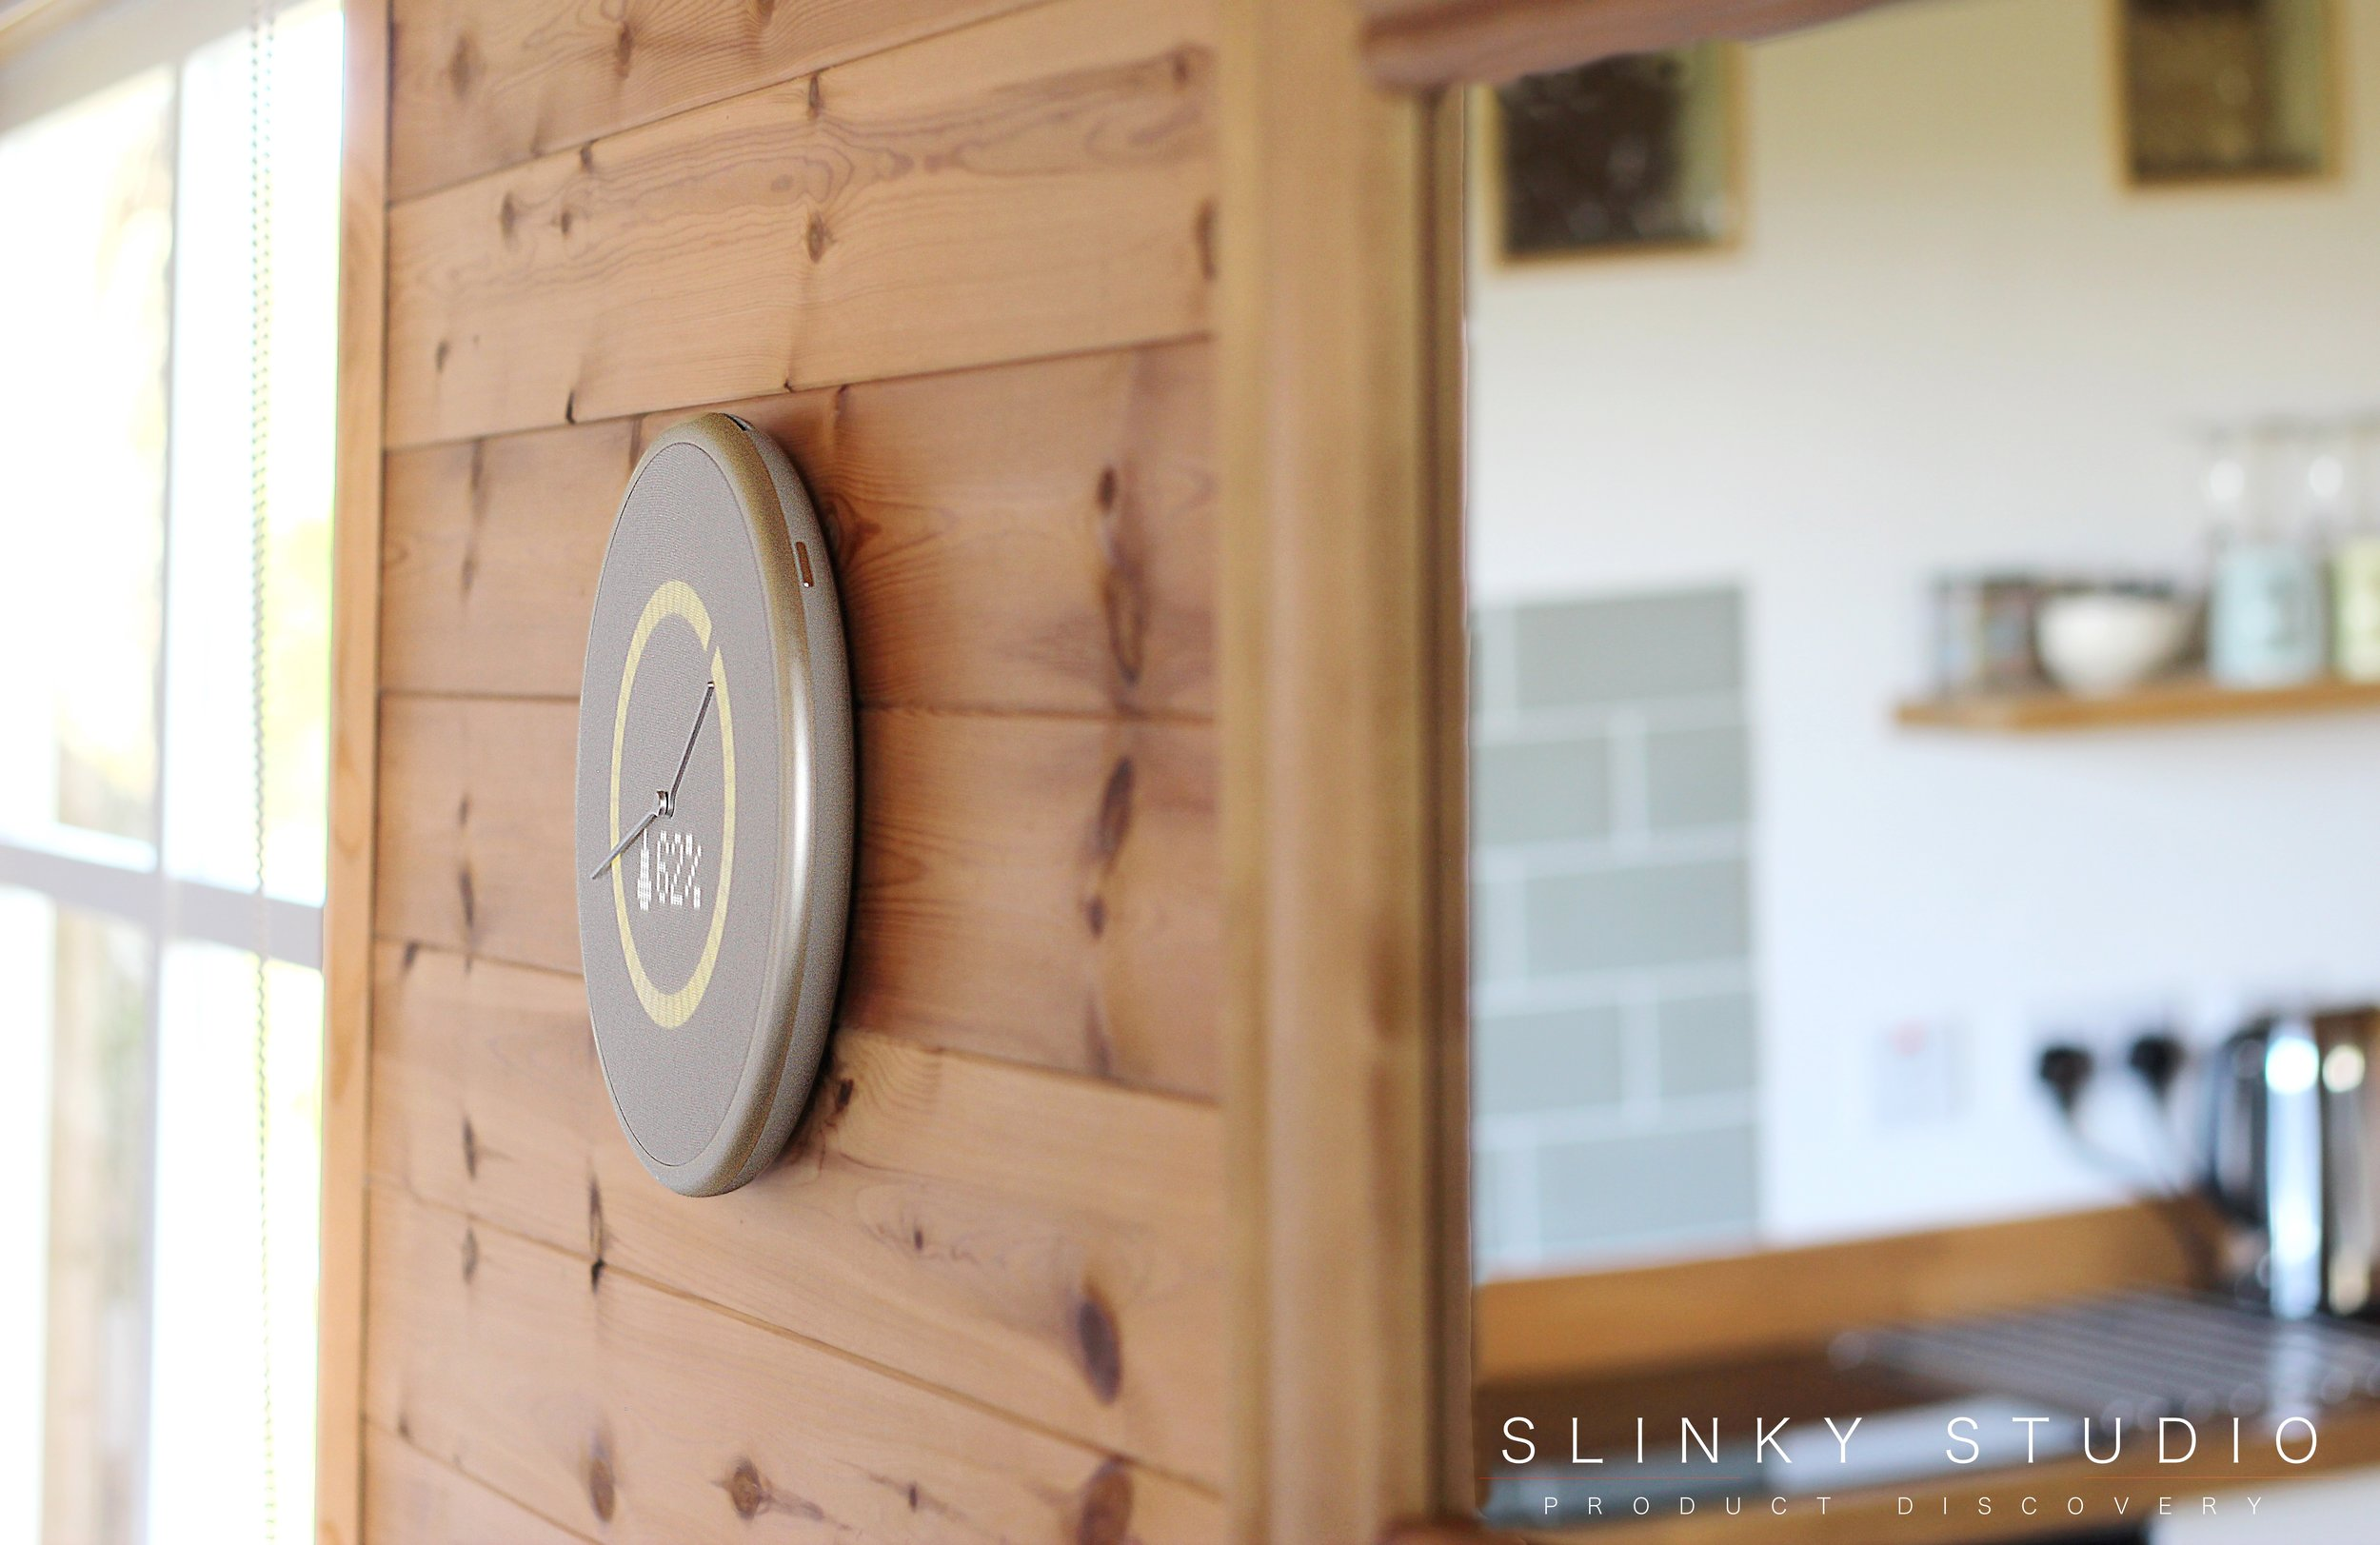 Glance Clock Hanging on Wooden Wall Timer.jpg